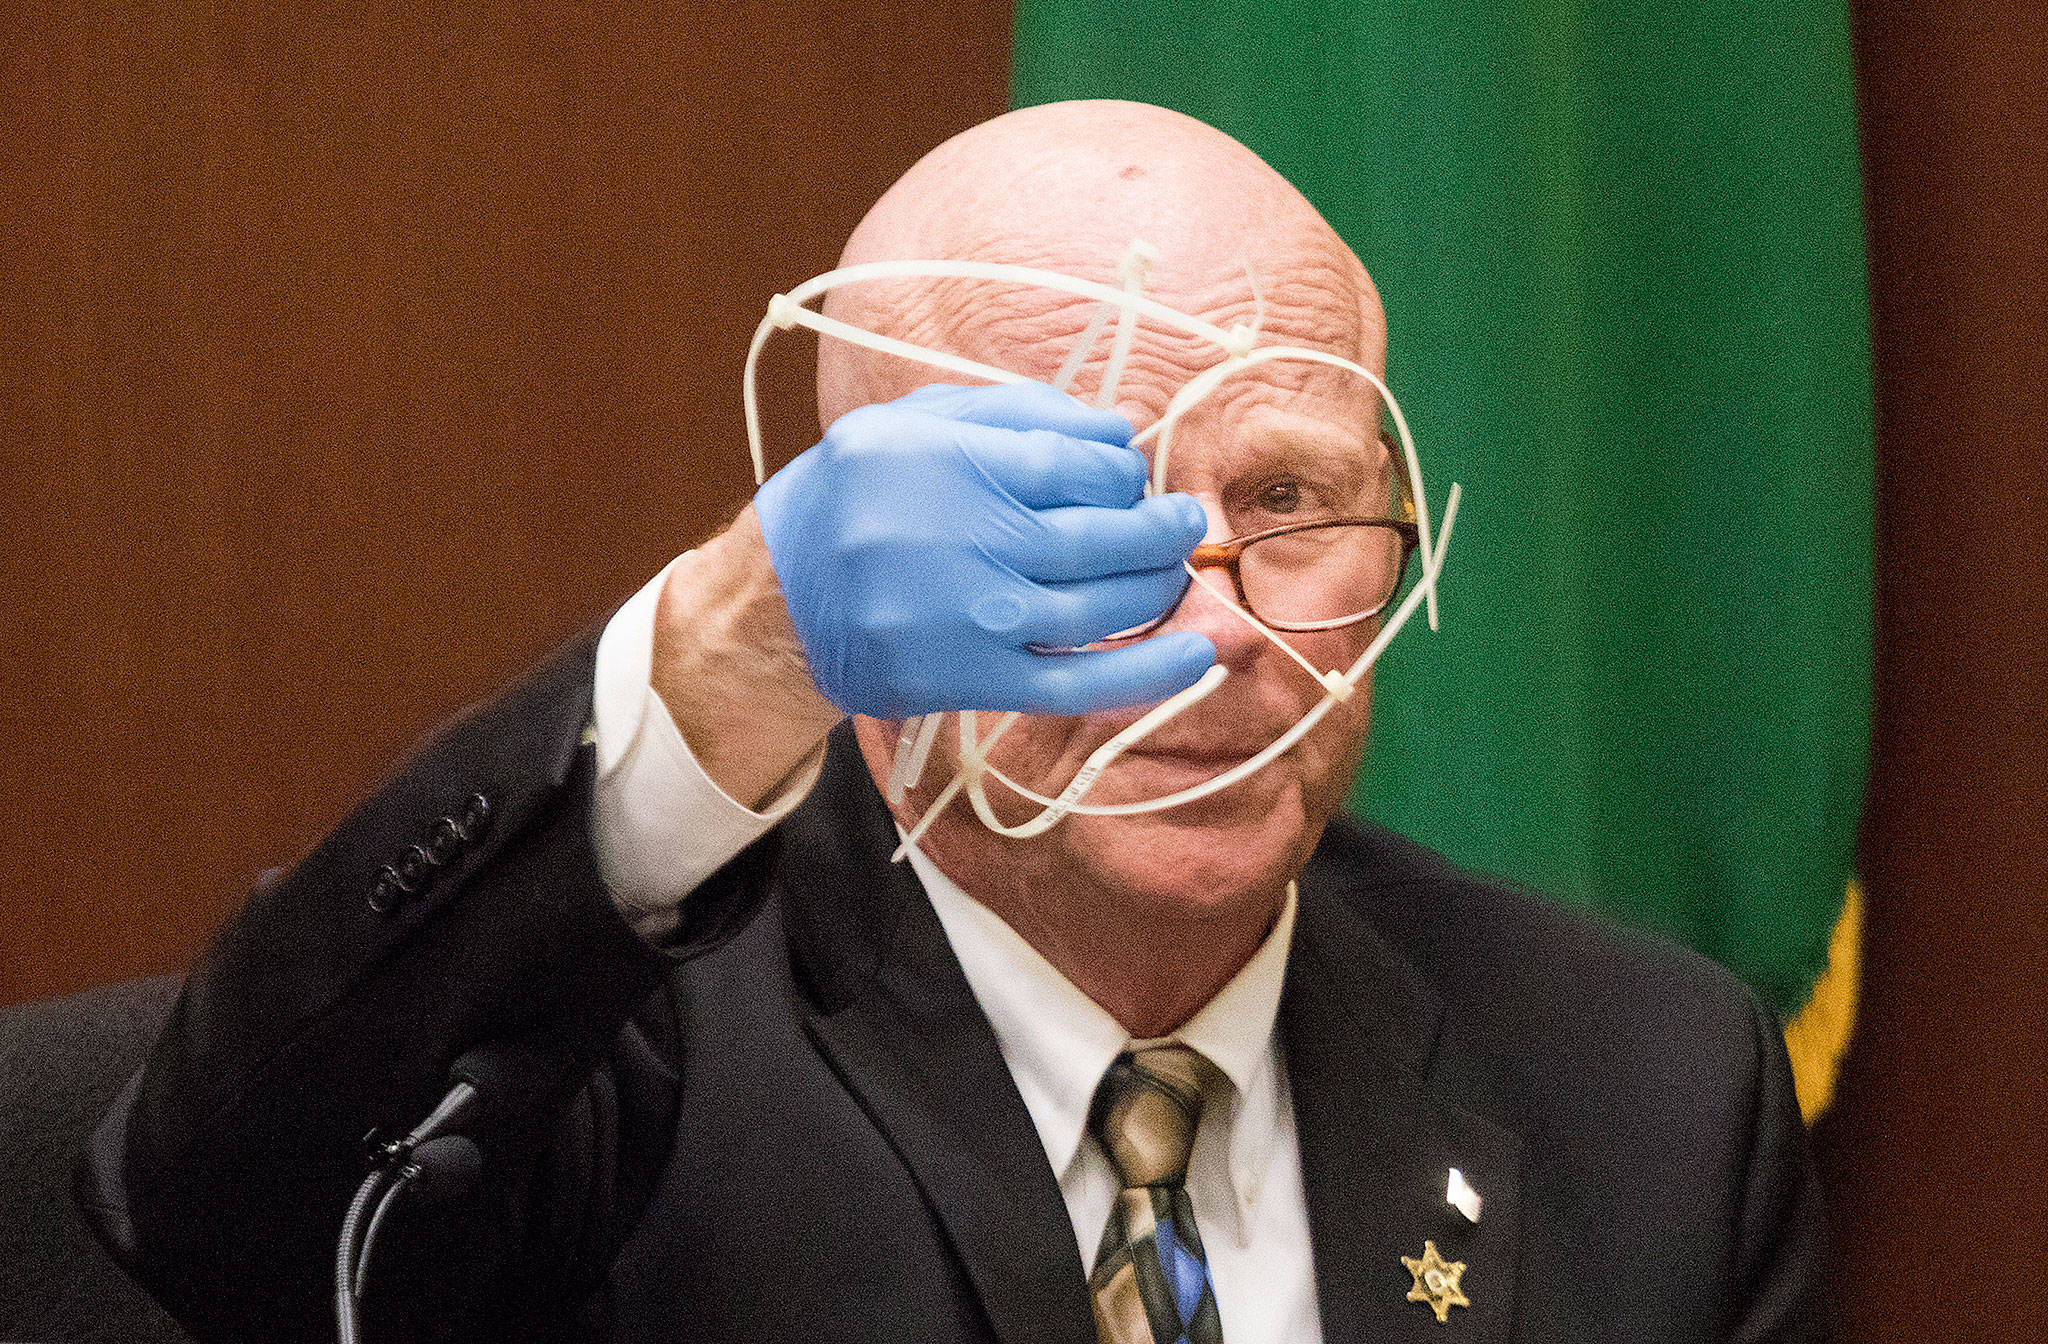 Retired Snohomish County detective and sheriff Rick Bart displays a group of zip ties, found near the body of Jay Cook, during his testimony at the trial for William Talbott II on Wednesday at the Snohomish County Courthouse in Everett. Talbott is on trial for the double-murder of Tanya Van Cuylenborg and Jay Cook. (Andy Bronson / The Herald/POOL)